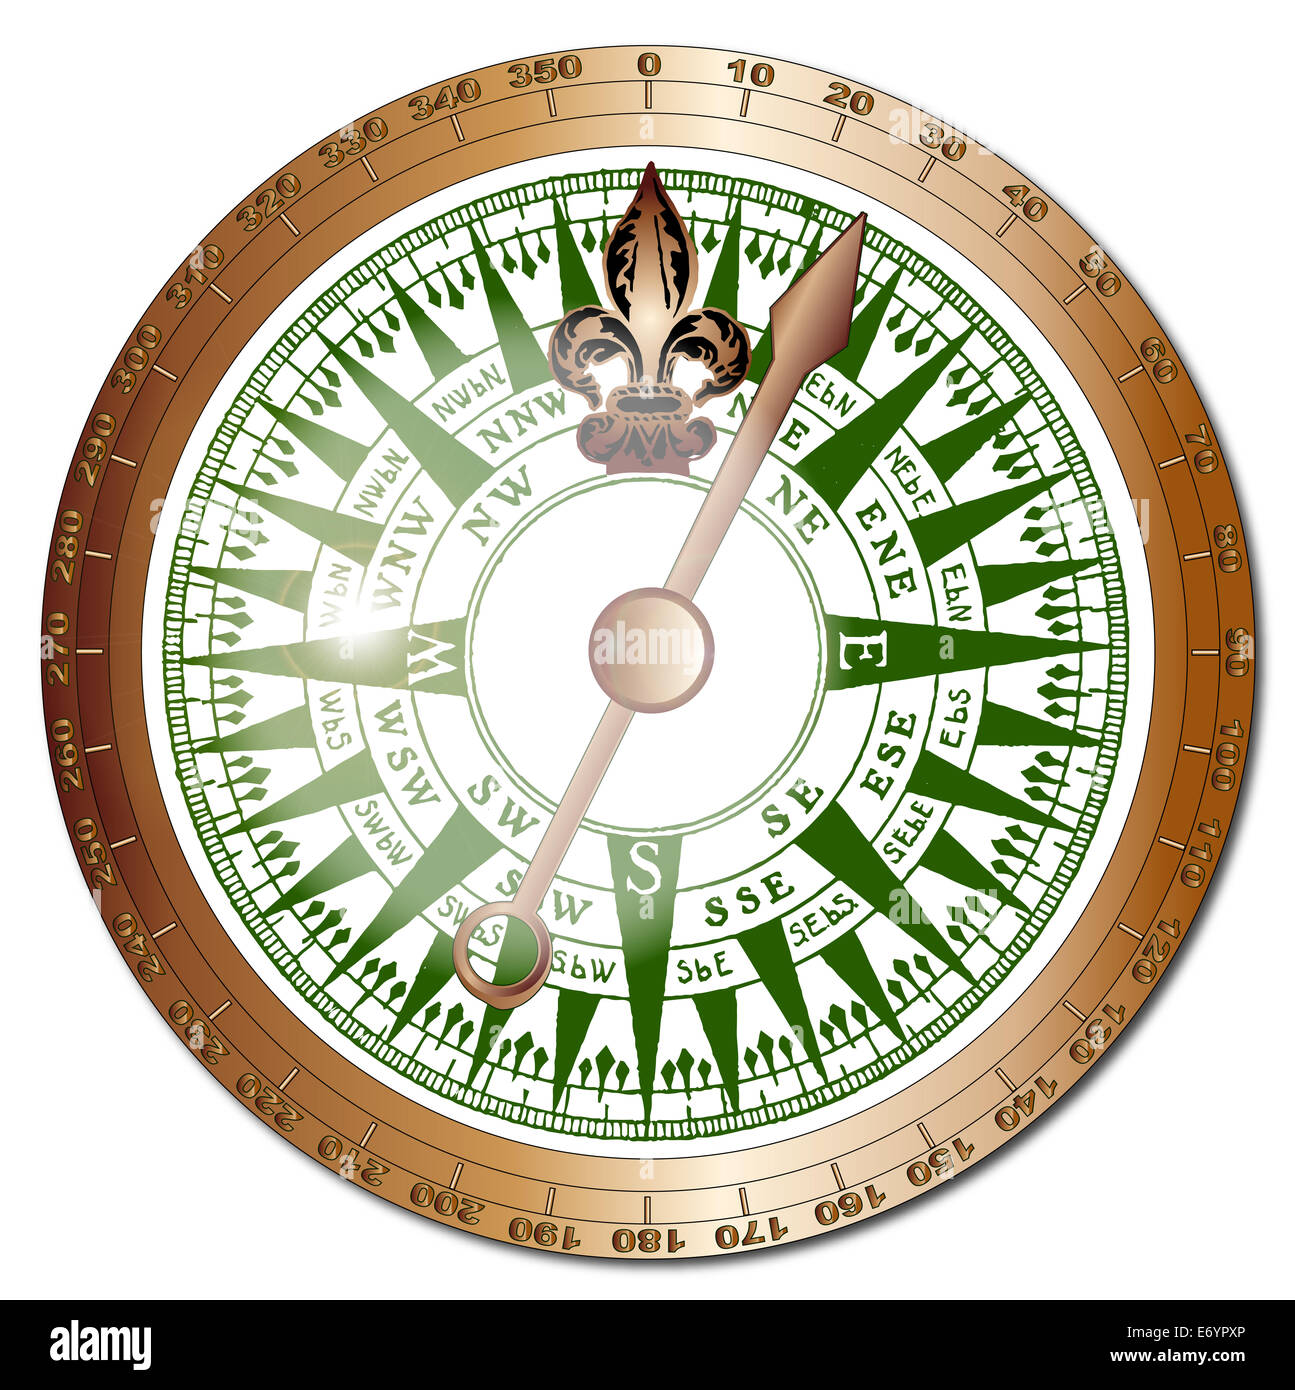 A typical old fashioned ships compass with brass bezel and glass reflections over a white background - Stock Image